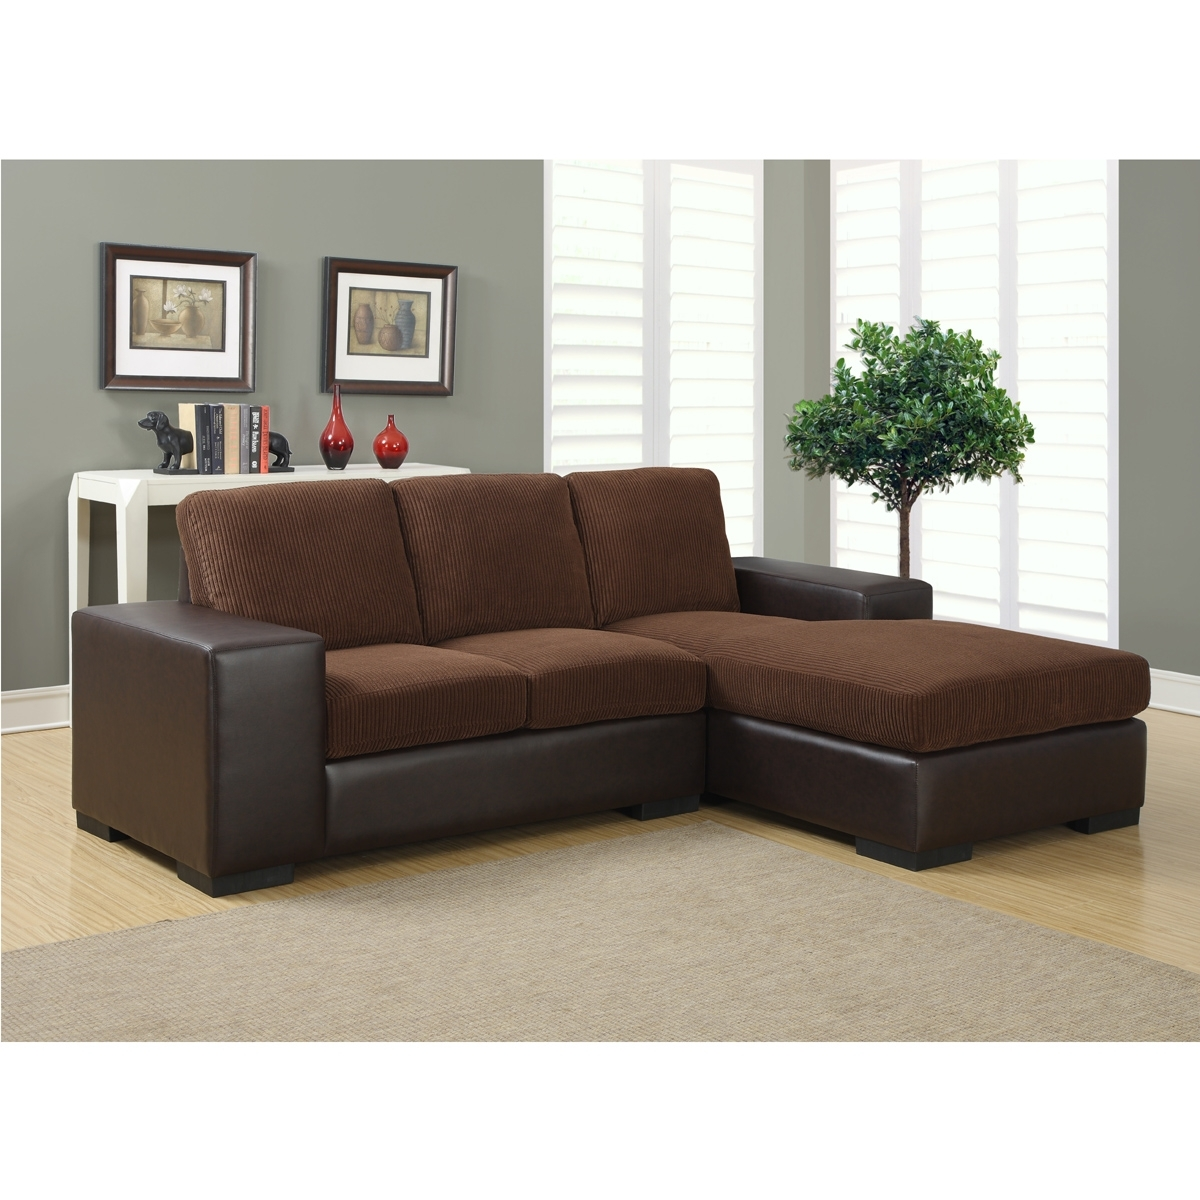 Jacob Sectional Sofa | Modern Sectional Sofas In Brown Corduroy throughout Sectional Sofas For Condos